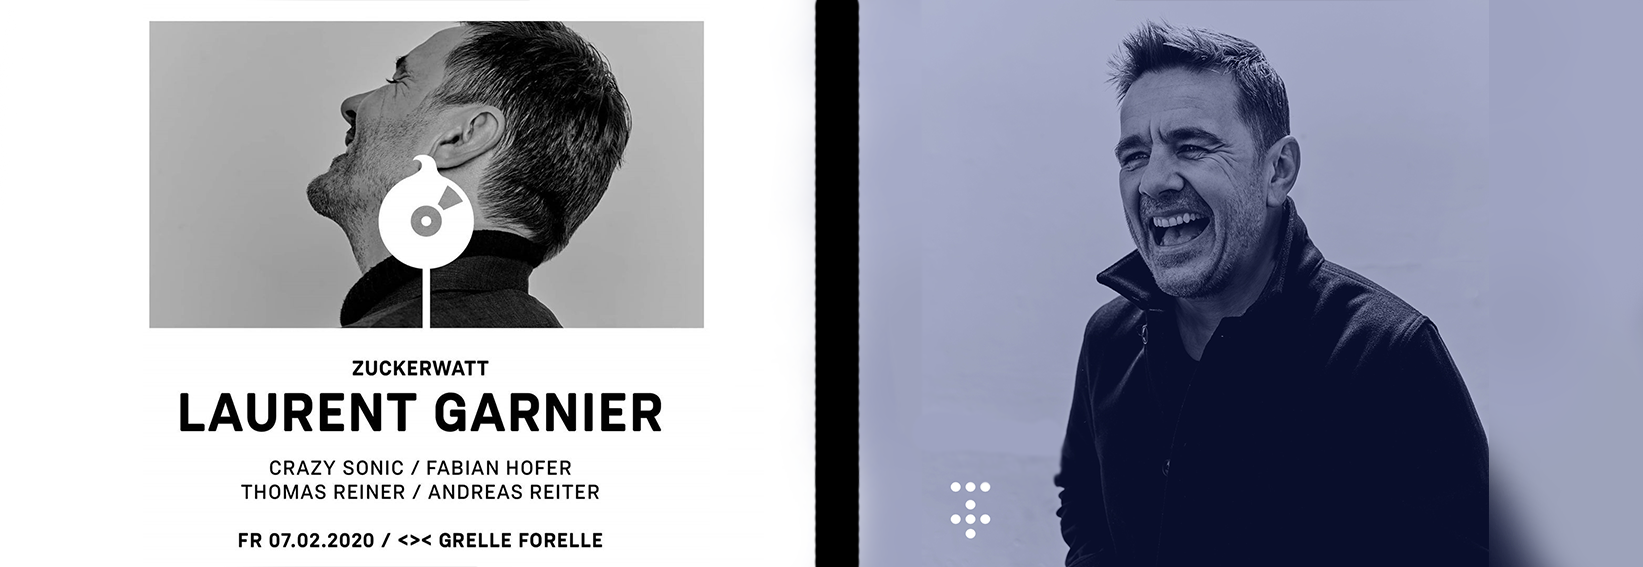 laurent garnier weekend